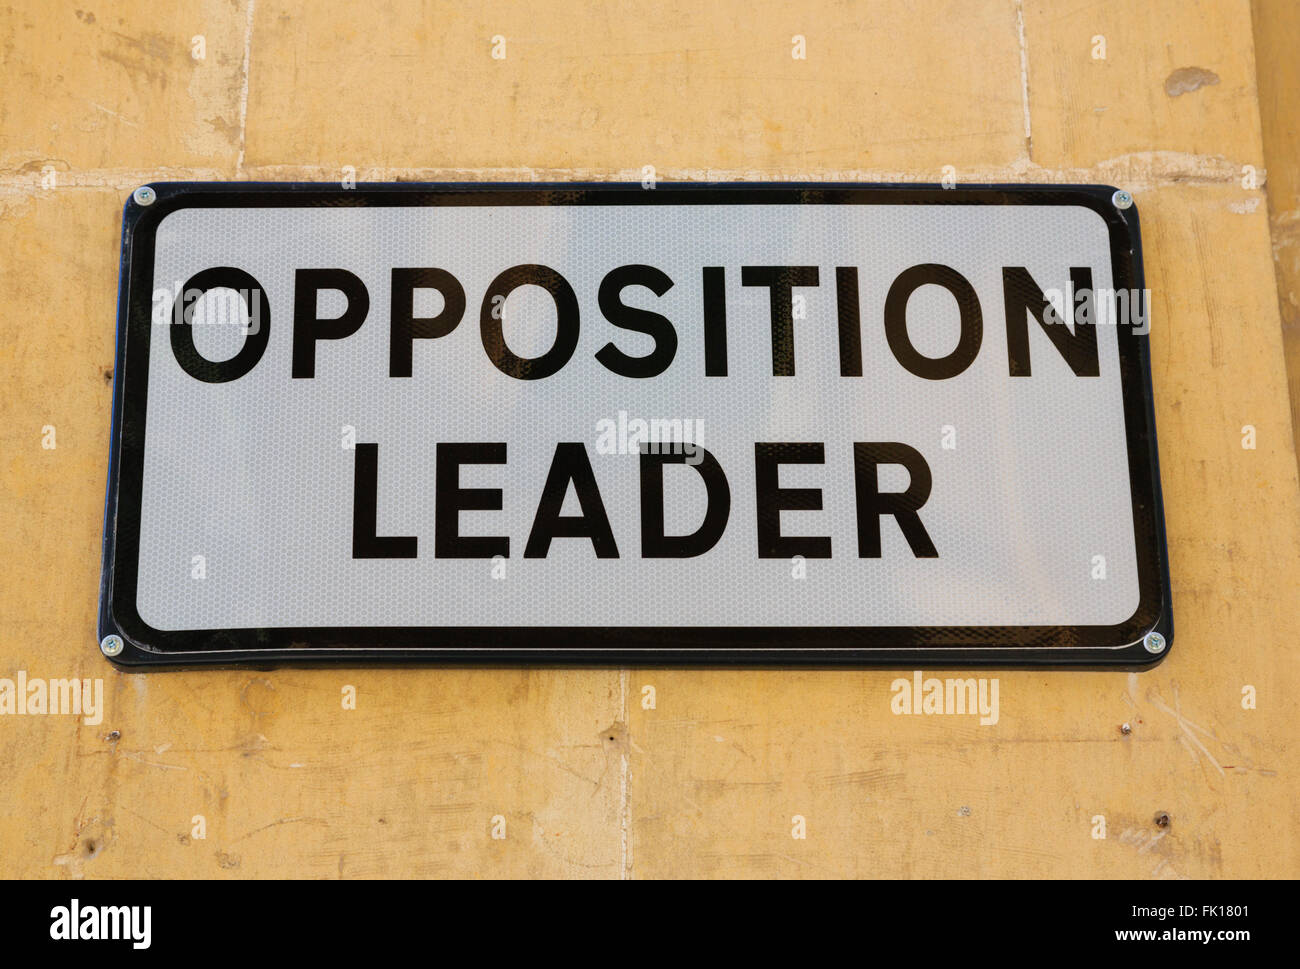 Parking place sign for the Maltese Parliament Opposition Leader, Valletta Malta - Stock Image